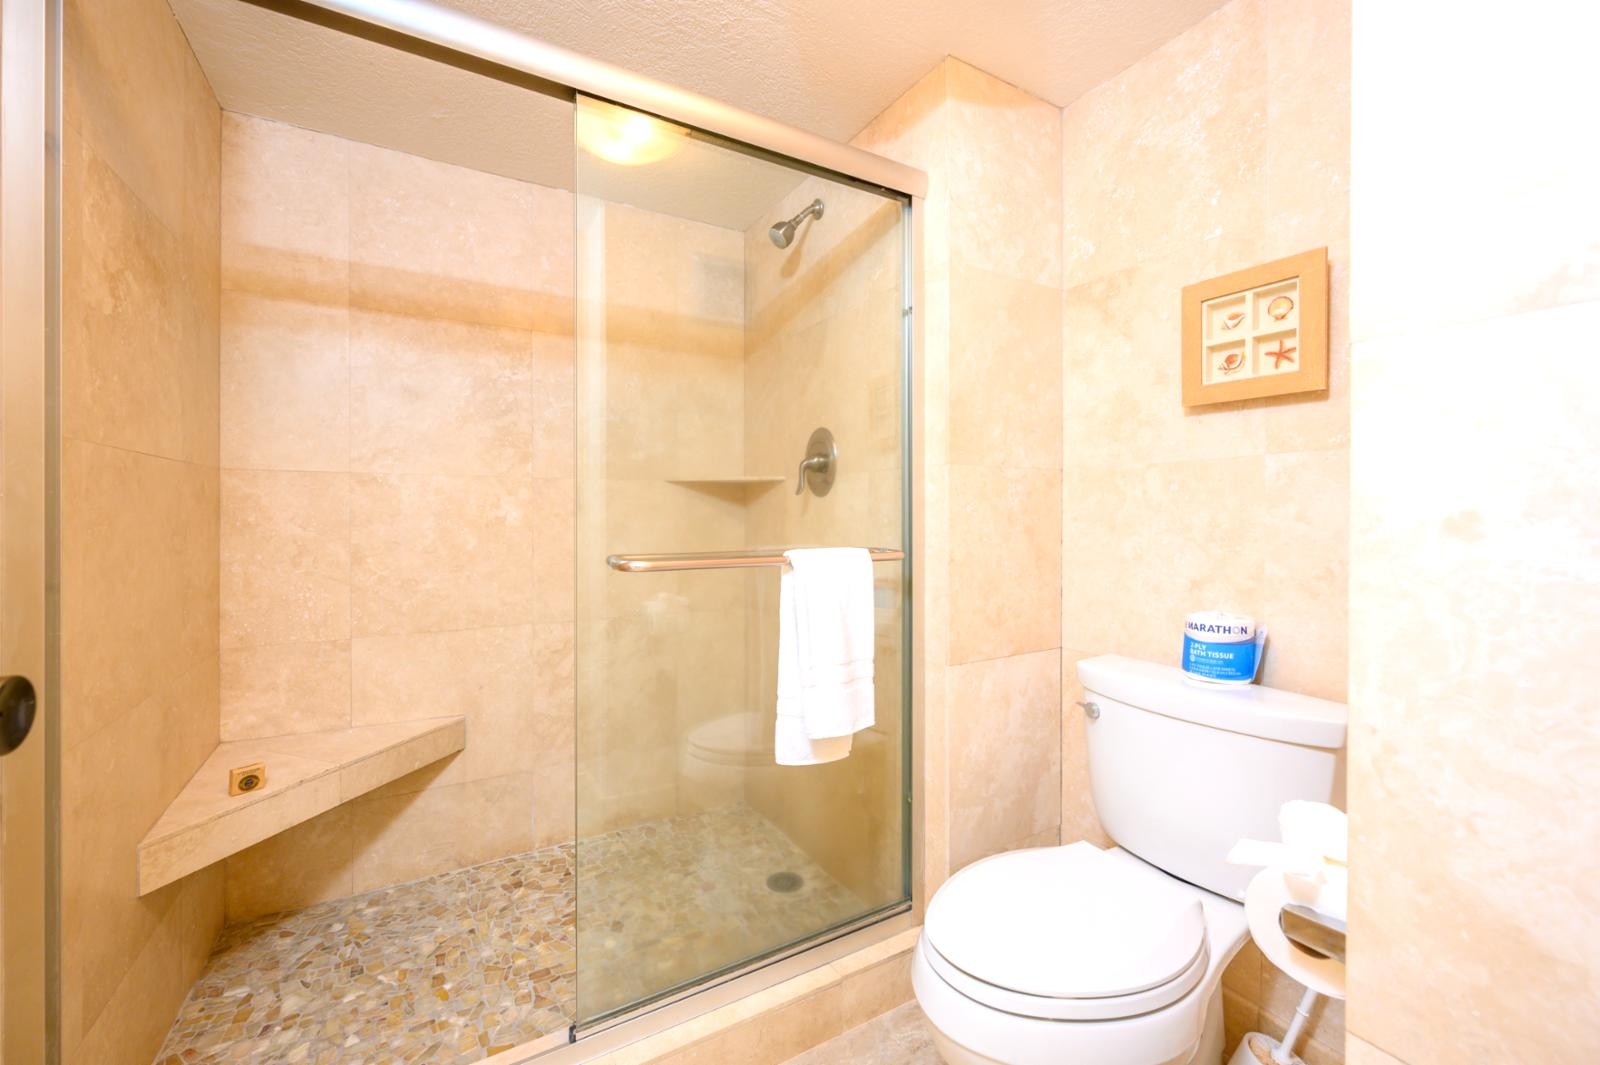 Floor to ceiling glass enclosed shower with oversized layout concept, ensuite